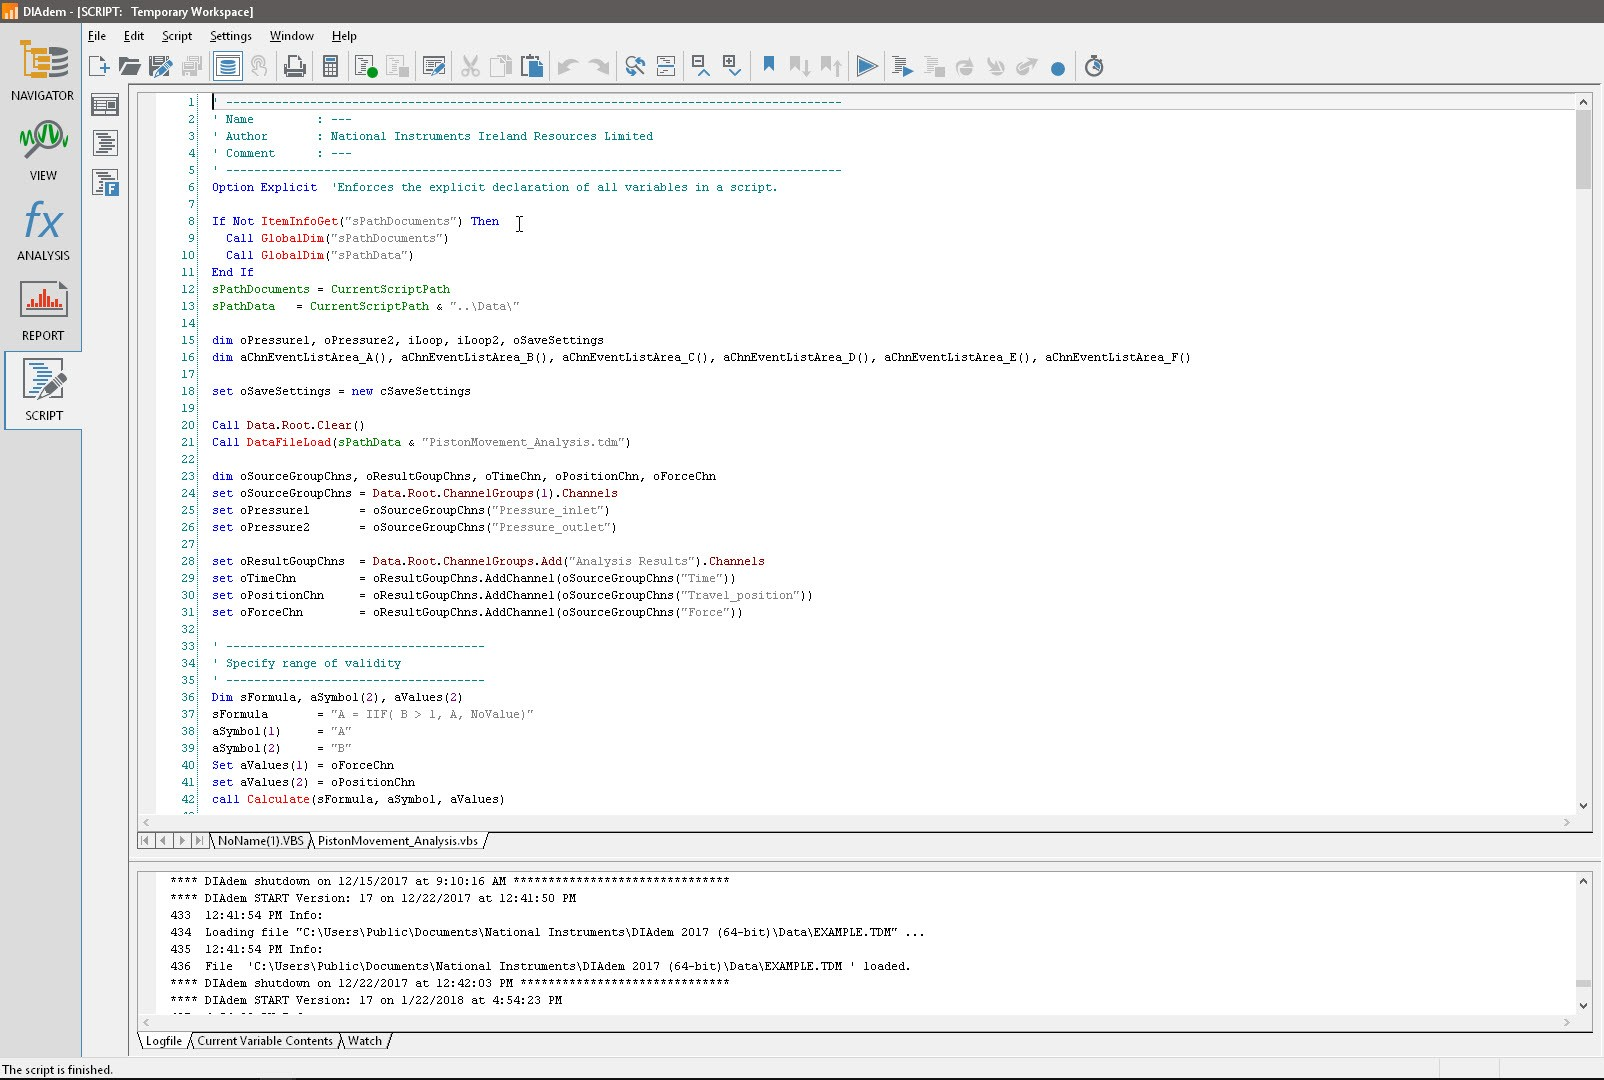 Automate tasks in DIAdem with scripting to save time and money